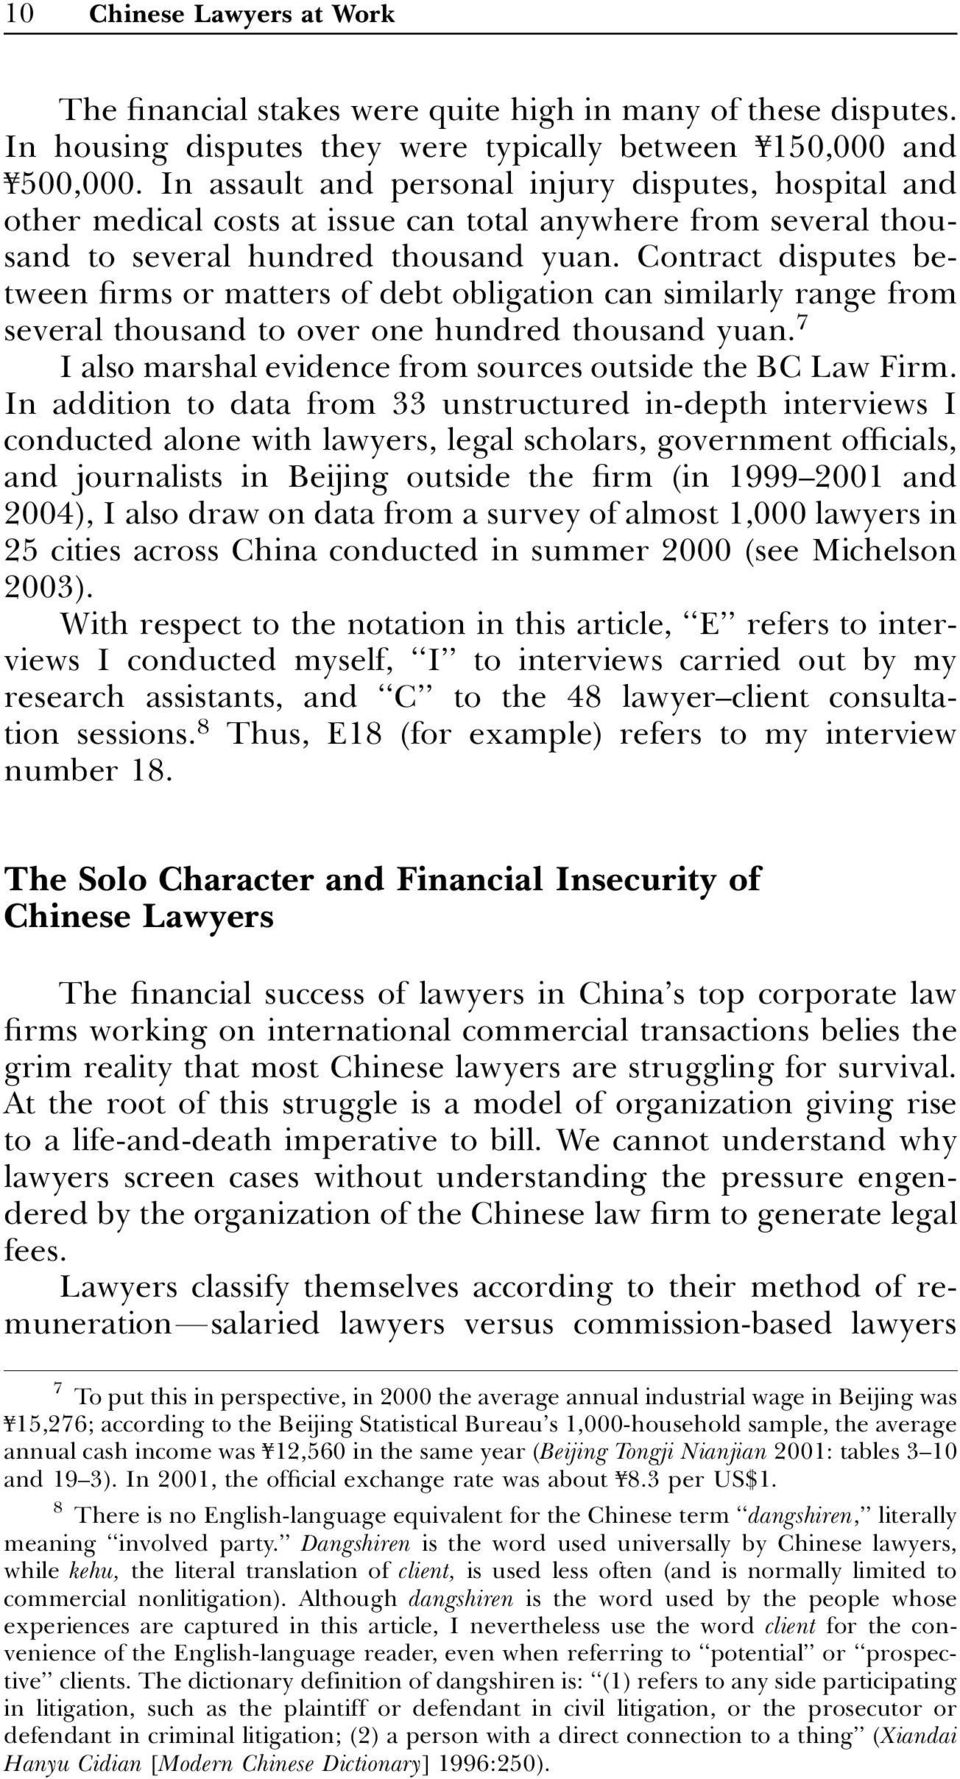 Contract disputes between firms or matters of debt obligation can similarly range from several thousand to over one hundred thousand yuan.